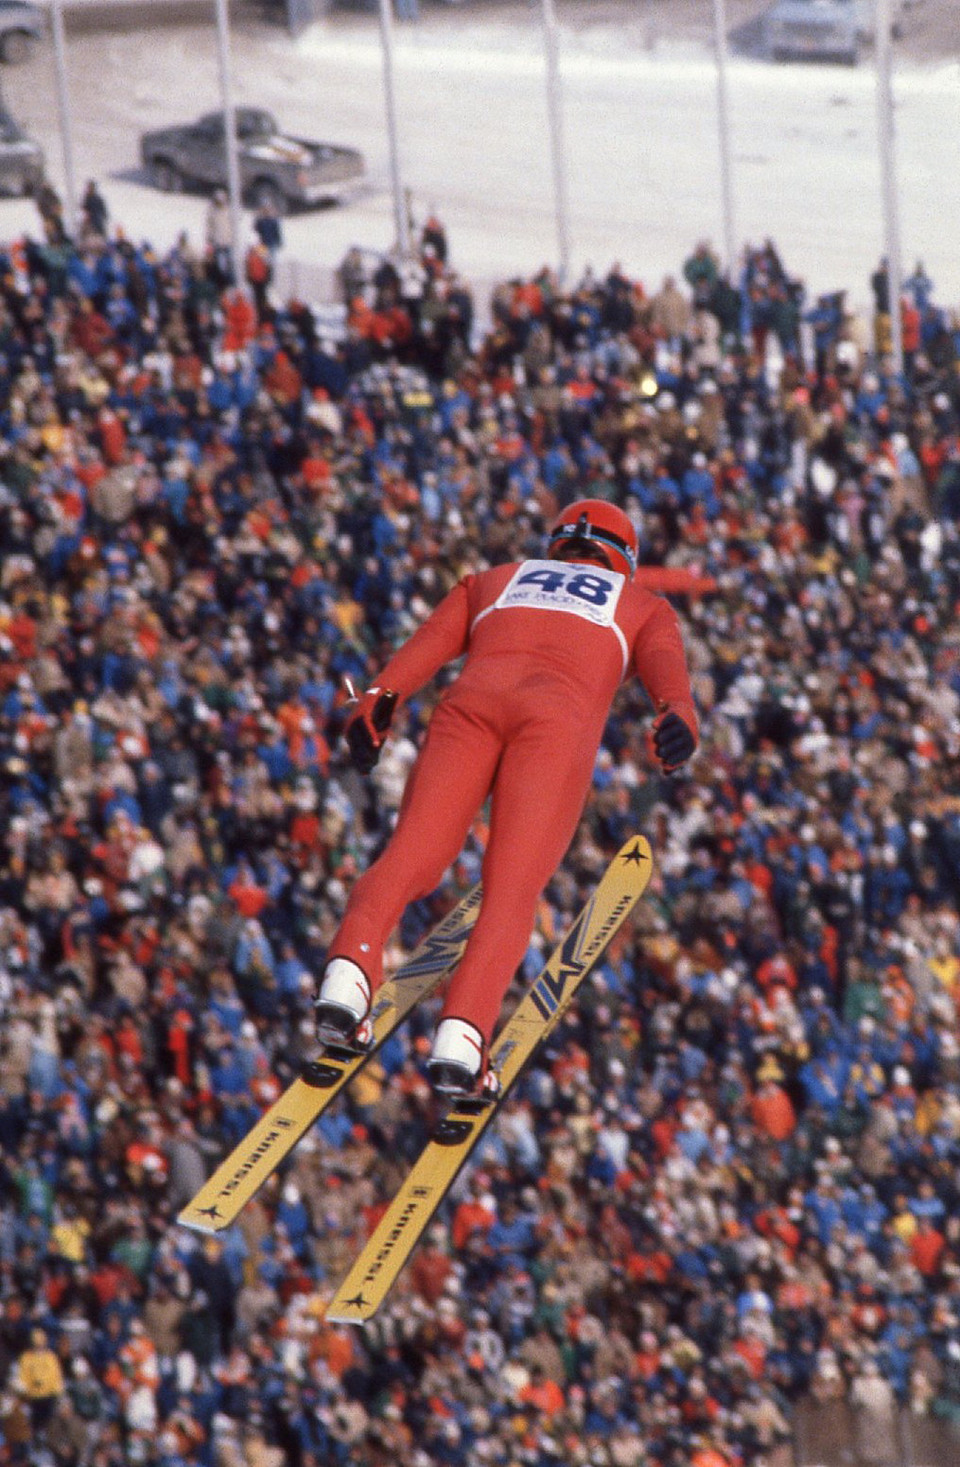 Man Flying Through The Air and Heavy Winds at the 1980 Winter Olympic Games